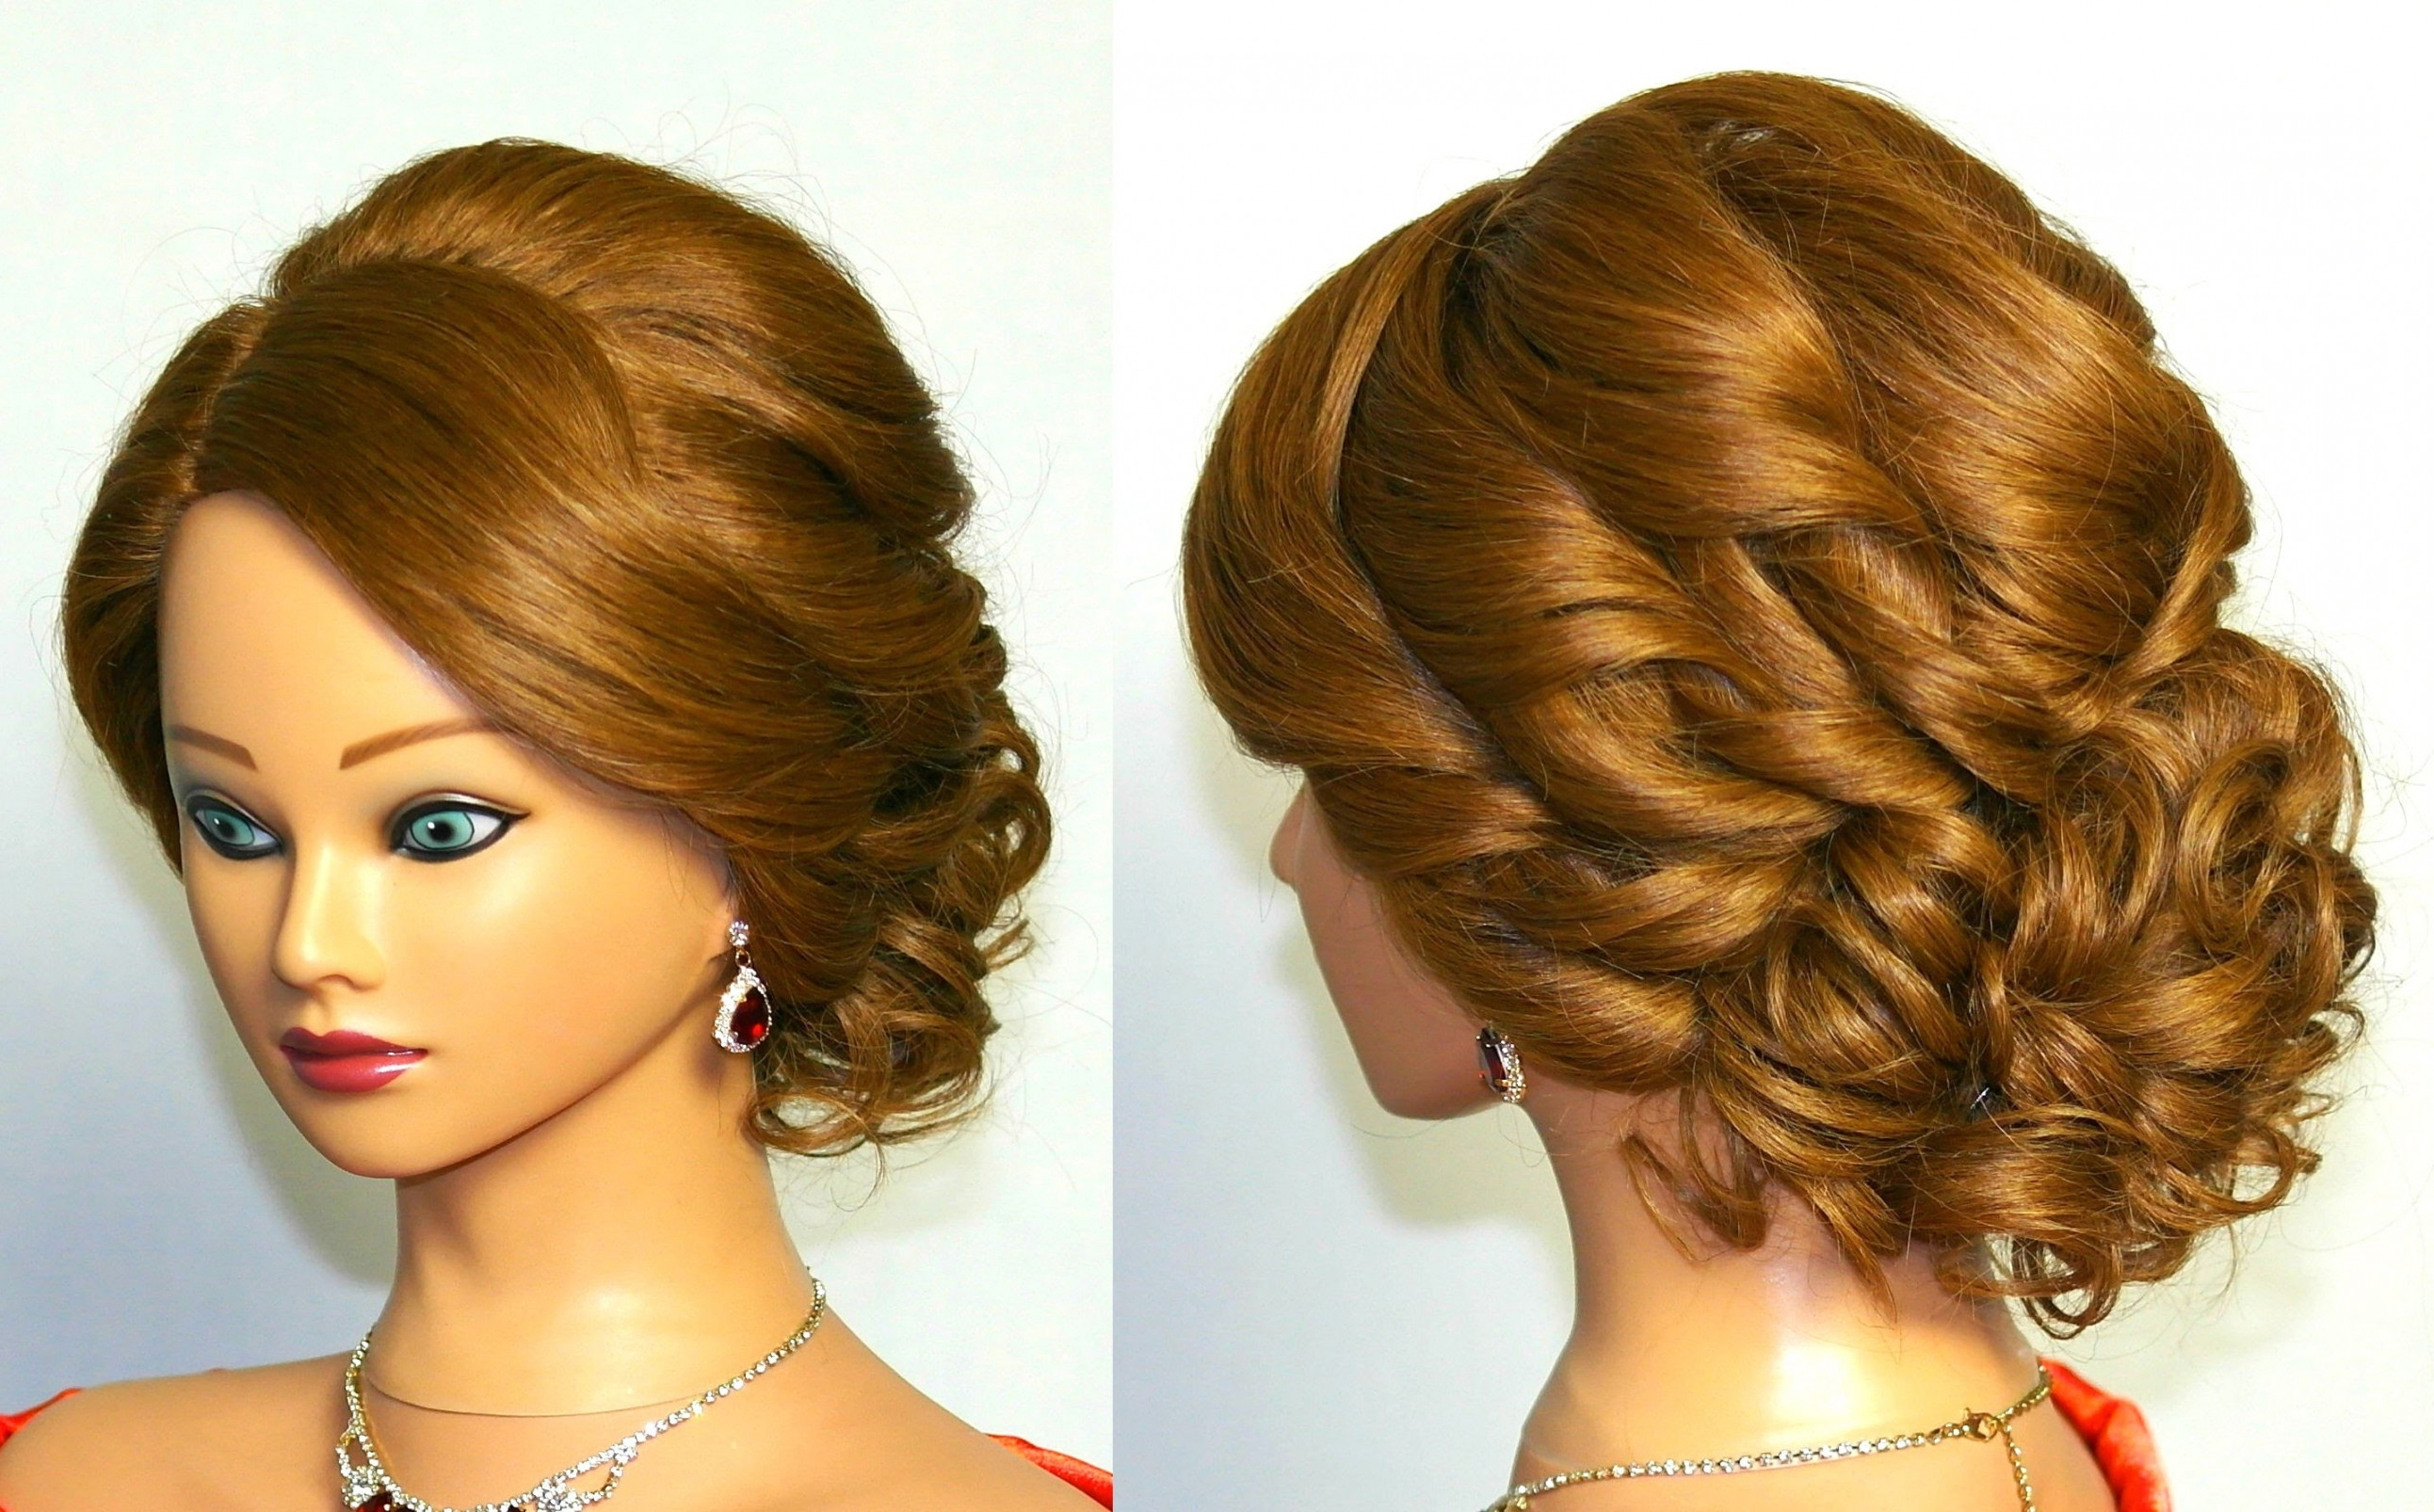 Hairstyles Curly Hair Bridal Curly Updo Hairstyle For Medium Hair For Updo Hairstyles For Long Curly Hair (View 6 of 15)